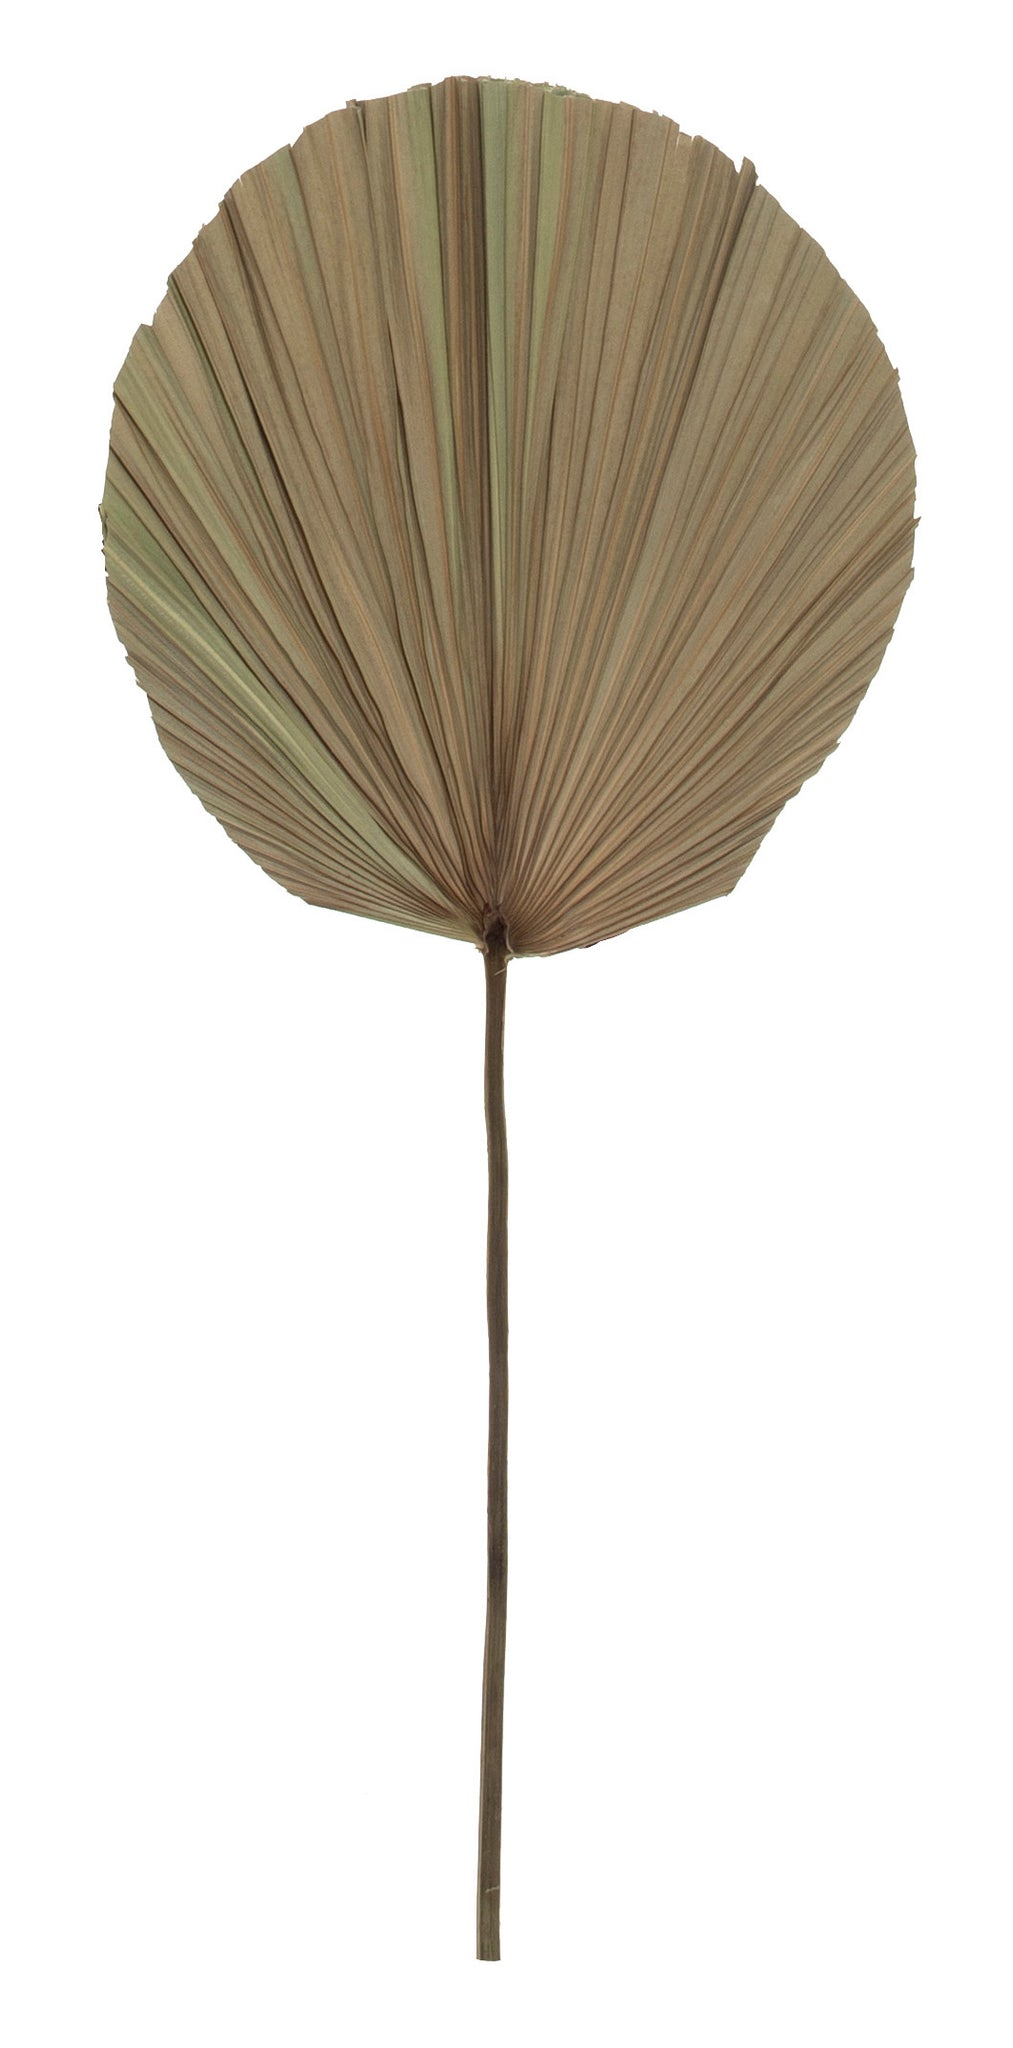 Dried Cut Fan Palm